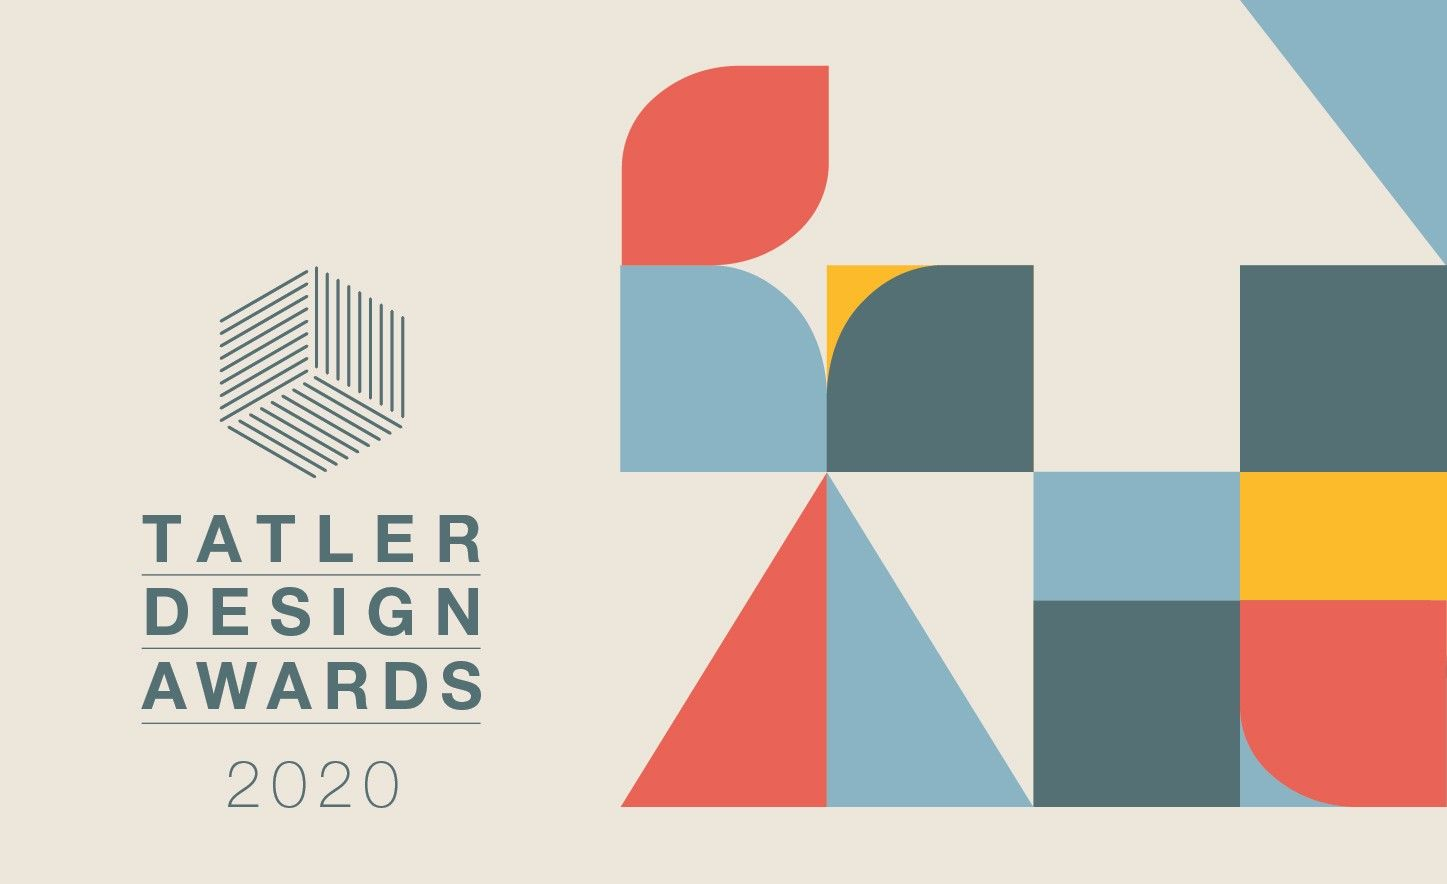 The Winners Of The Tatler Design Awards 2020